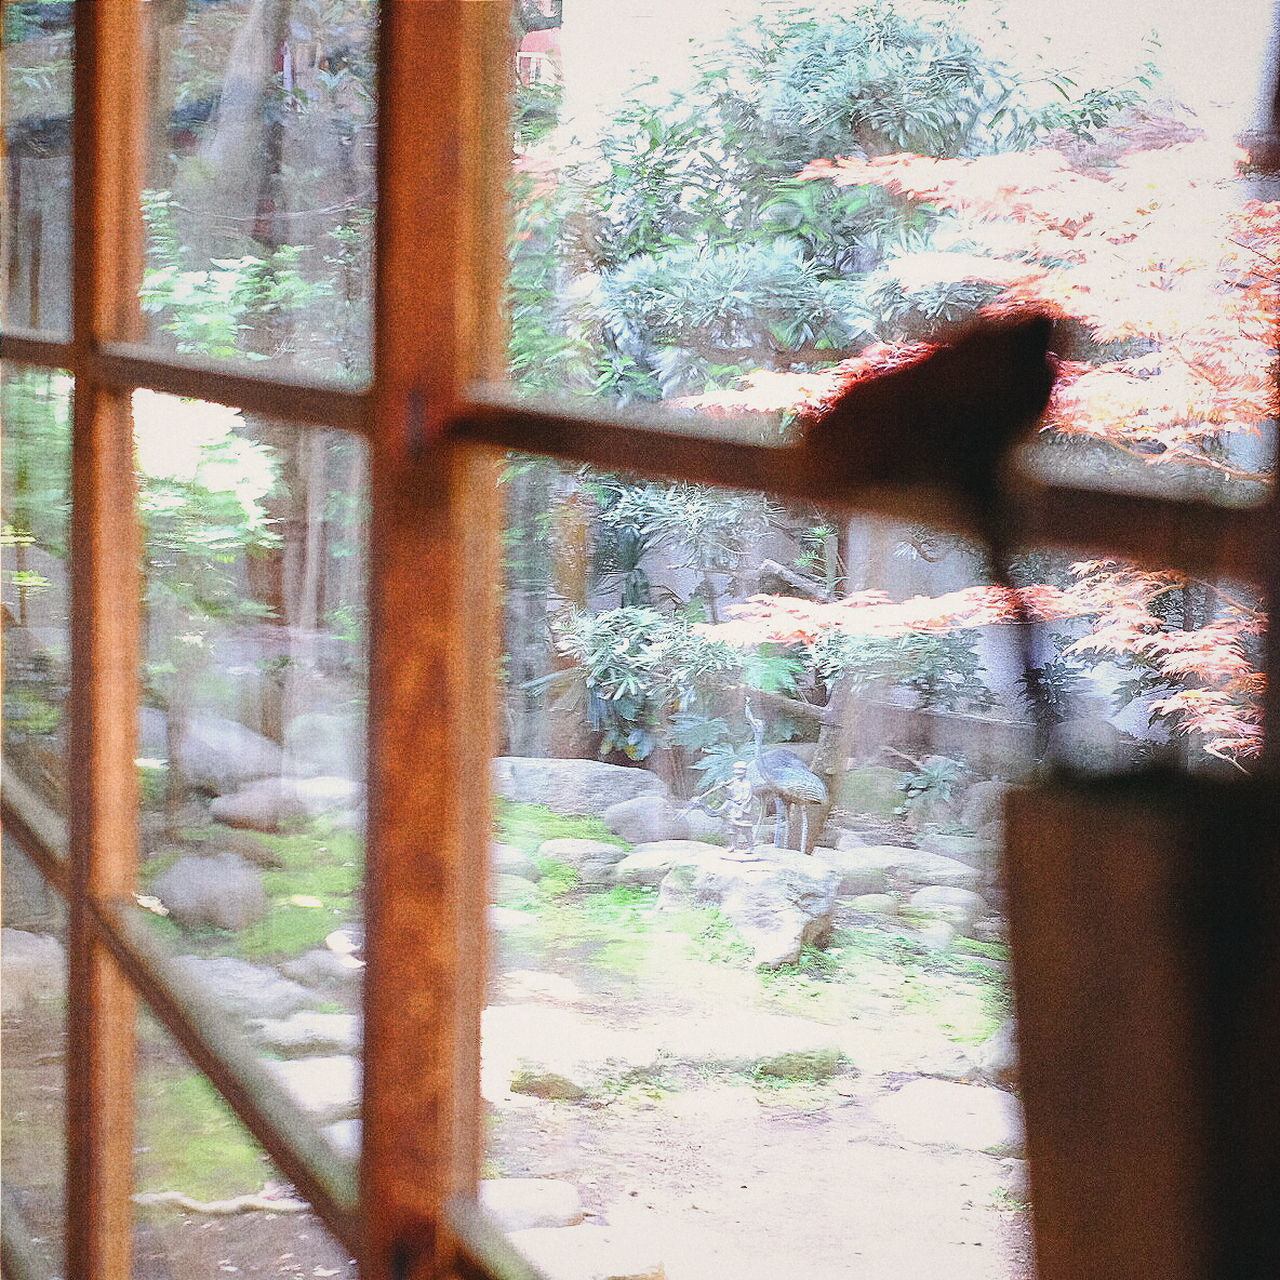 The Perks of being a wallflower. Ryokan Japan